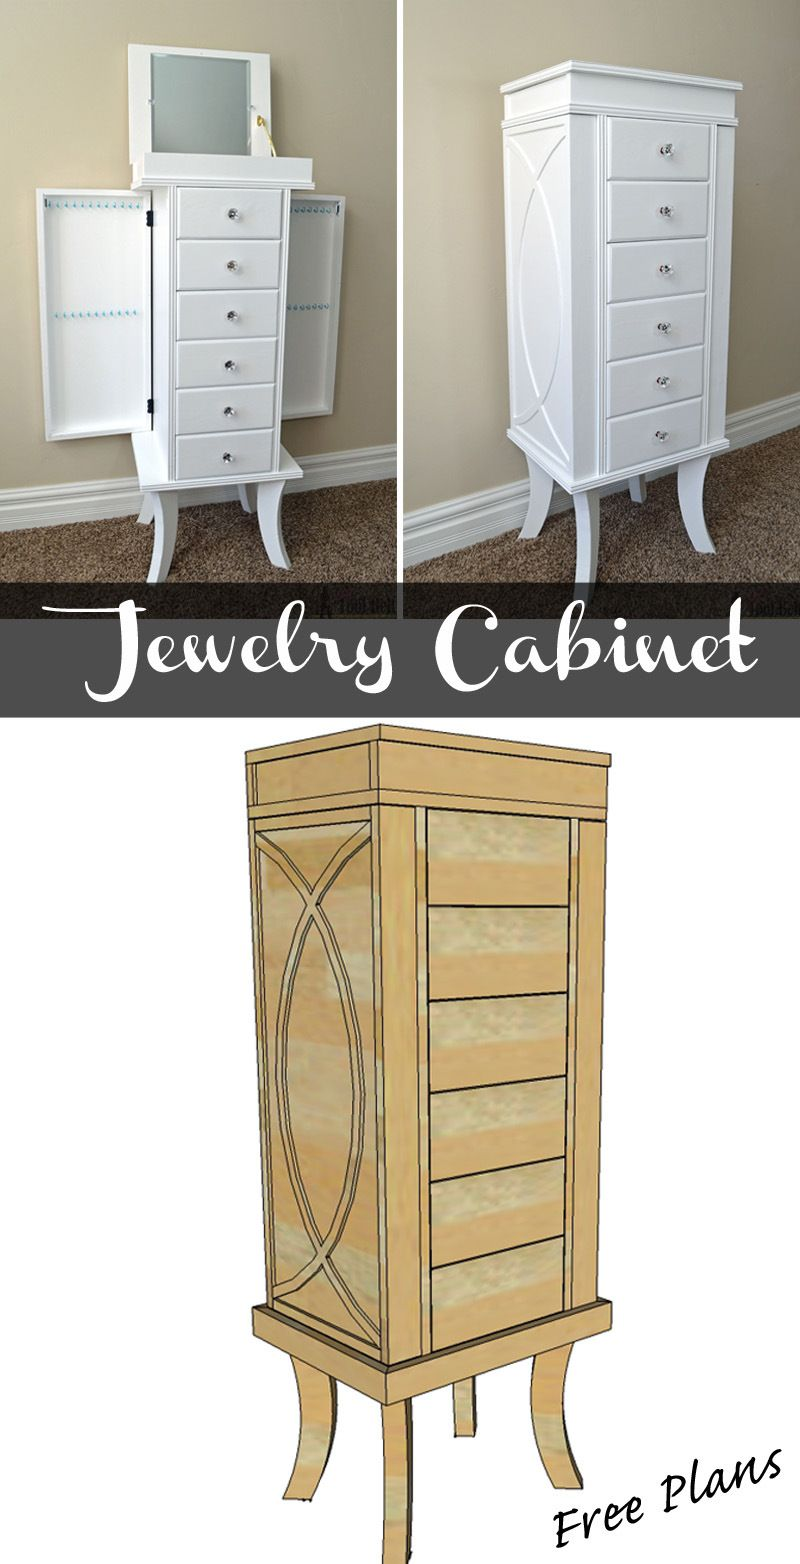 Jewelry cabinet jewelry cabinet diy woodworking and woodworking build a beautiful jewelry cabinet to organize and store all of your beautiful things free solutioingenieria Gallery